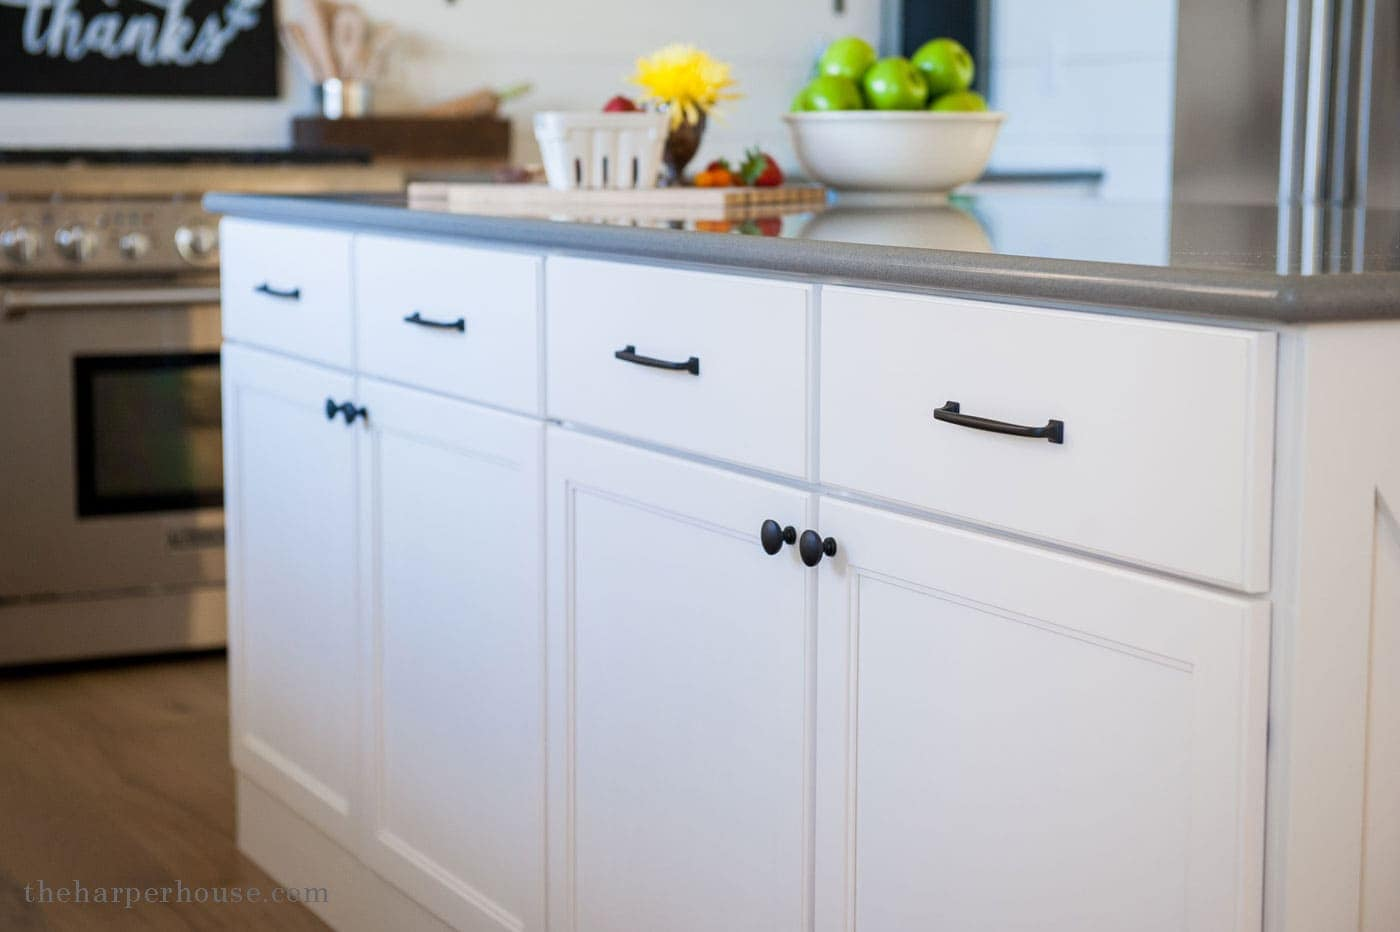 Kitchen Cabinets Handles Of Kitchen Hardware 27 Budget Friendly Options The Harper